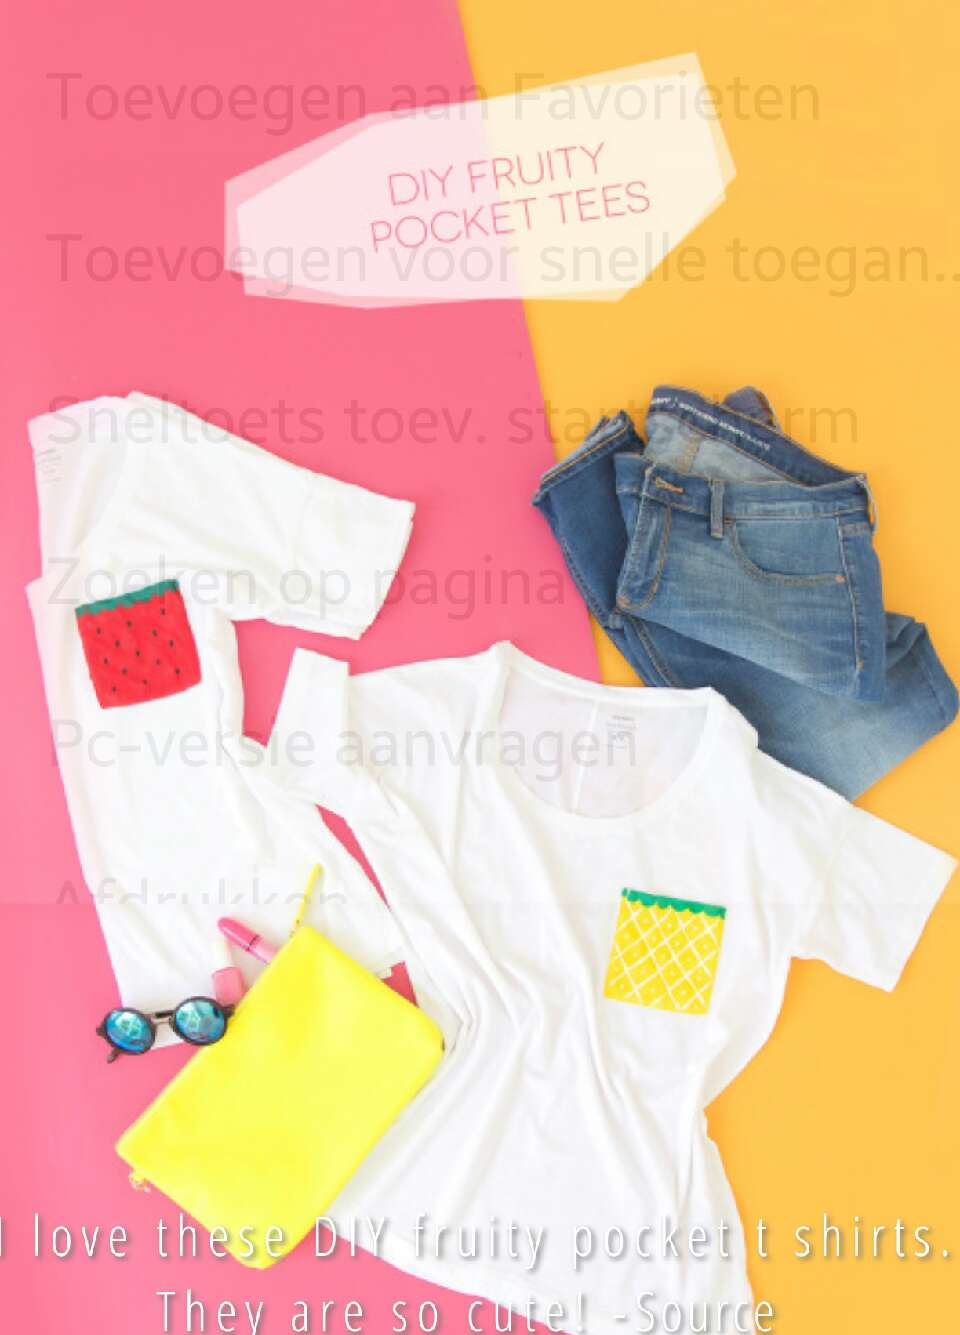 http://diycandy.tumblr.com/post/148888134190/i-love-these-diy-fruity-pocket-t-shirts-they-are